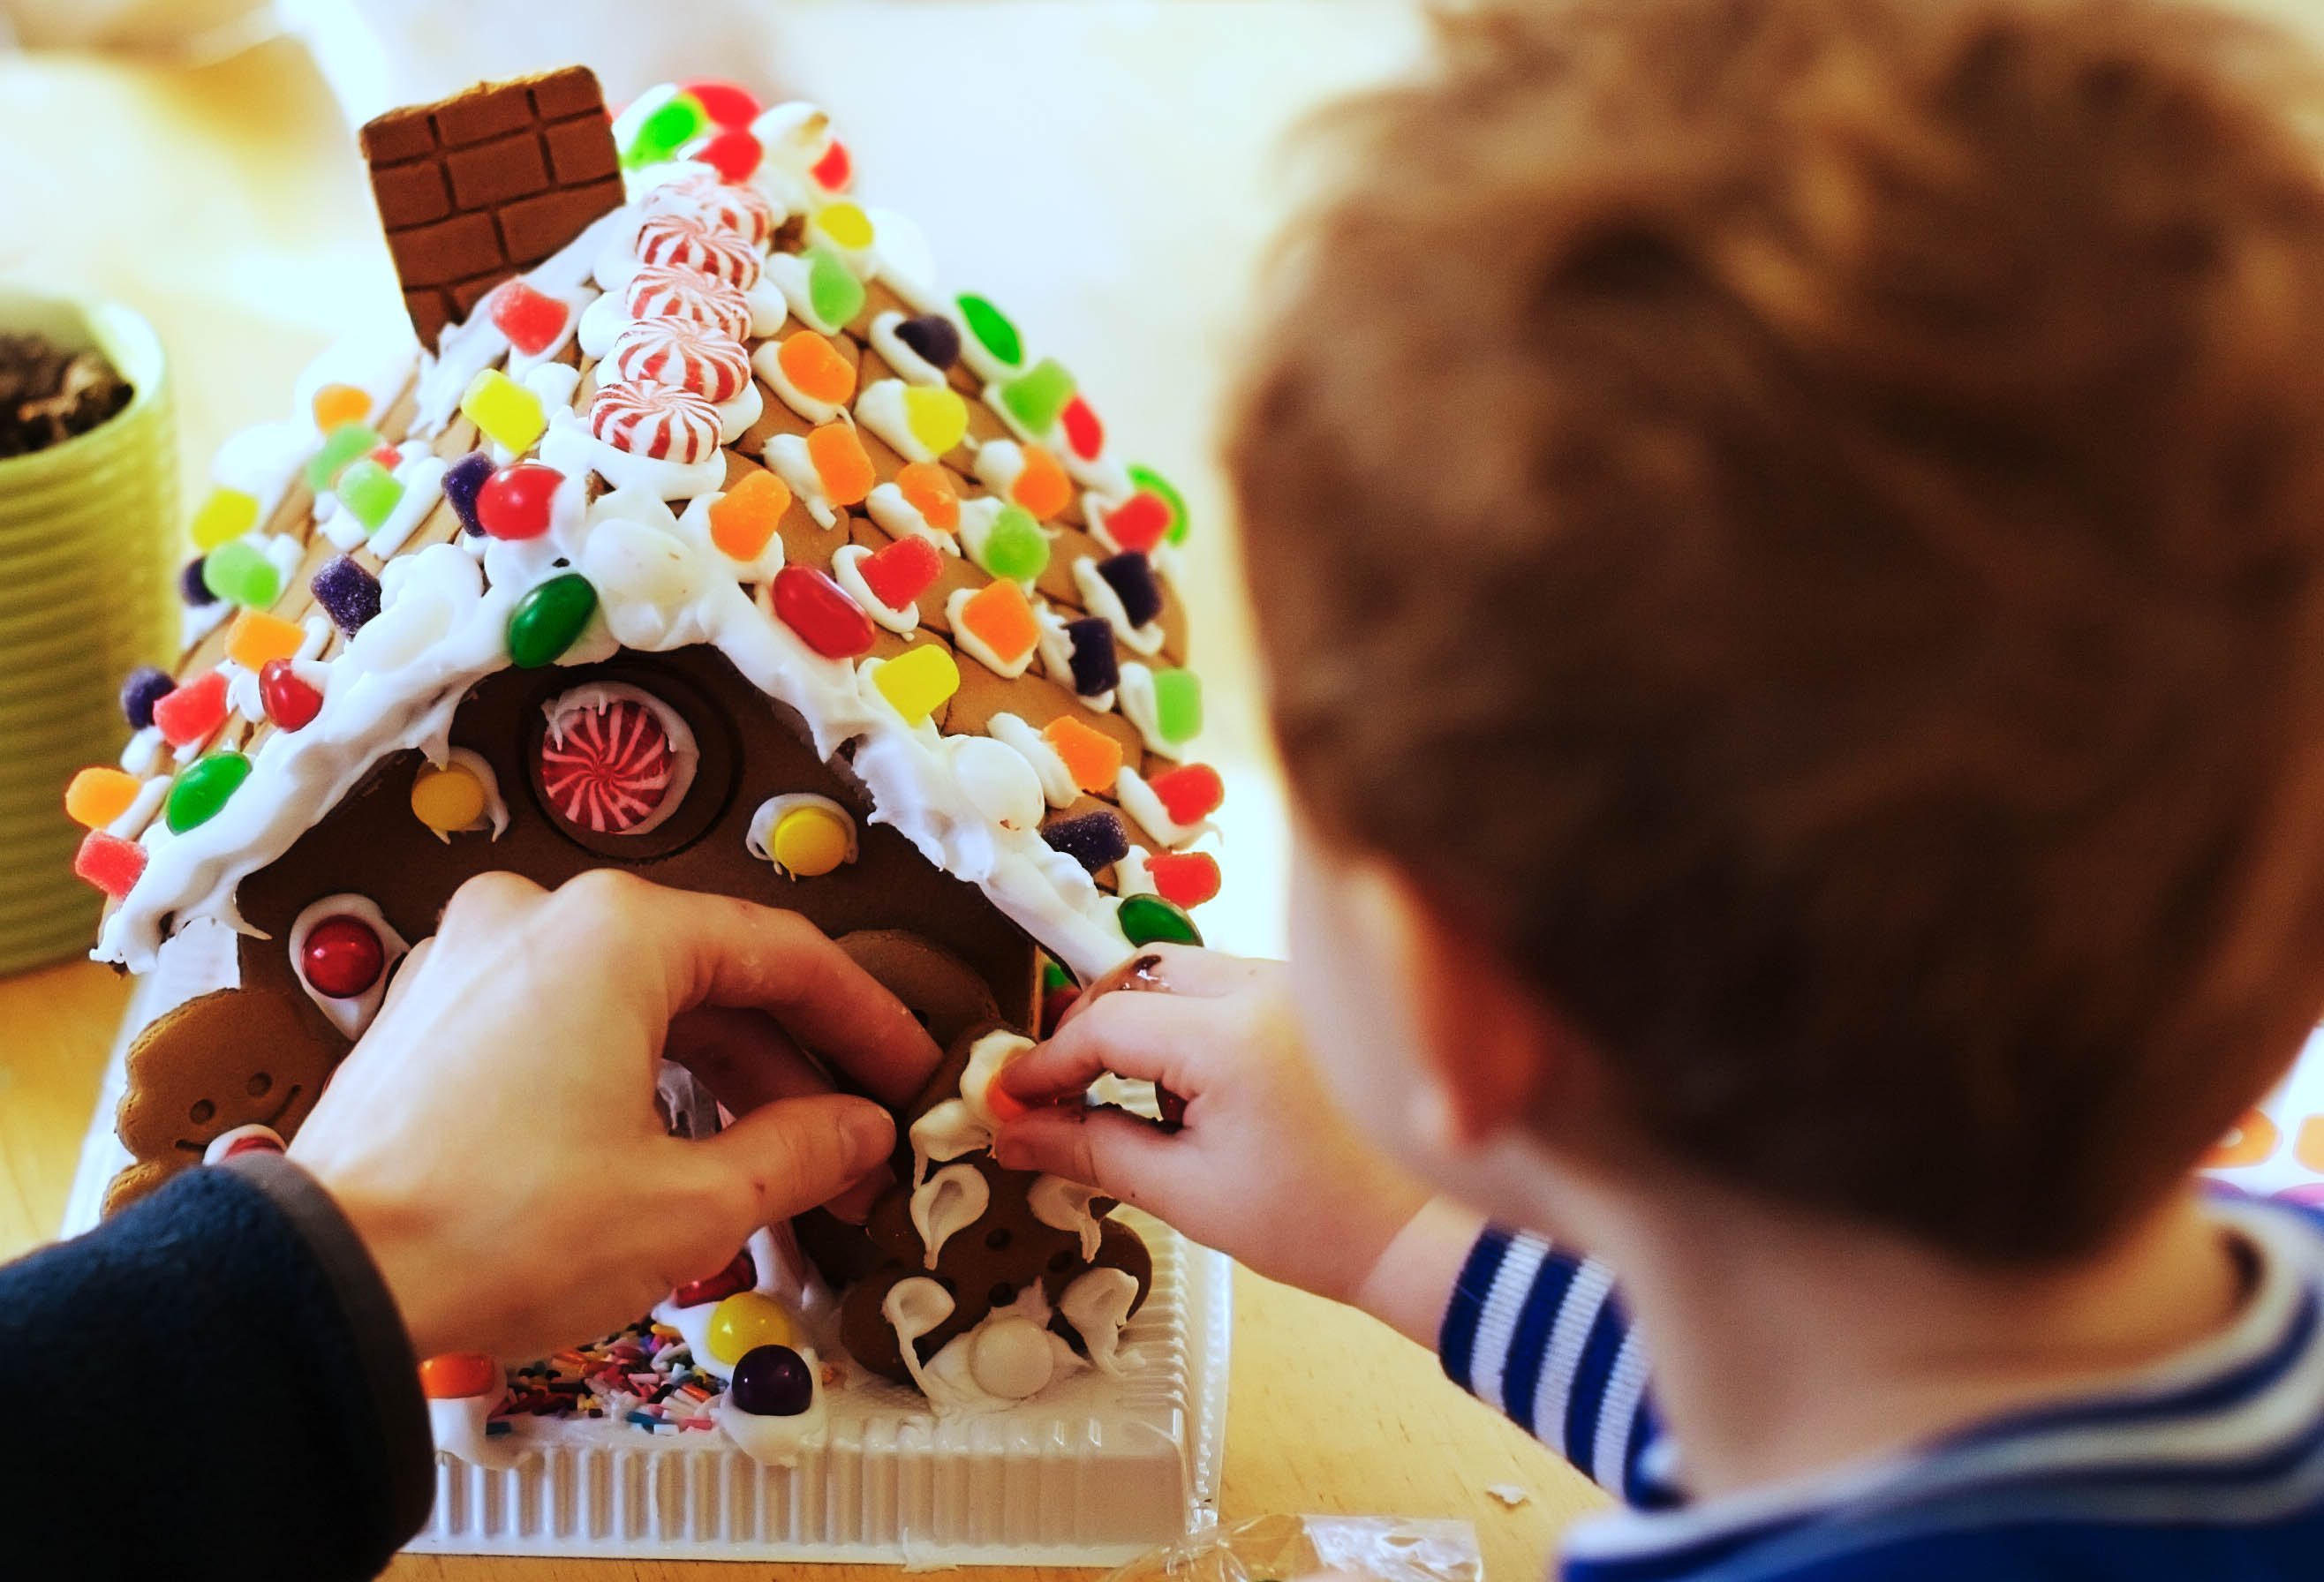 Tips for constructing that perfect Gingerbread House